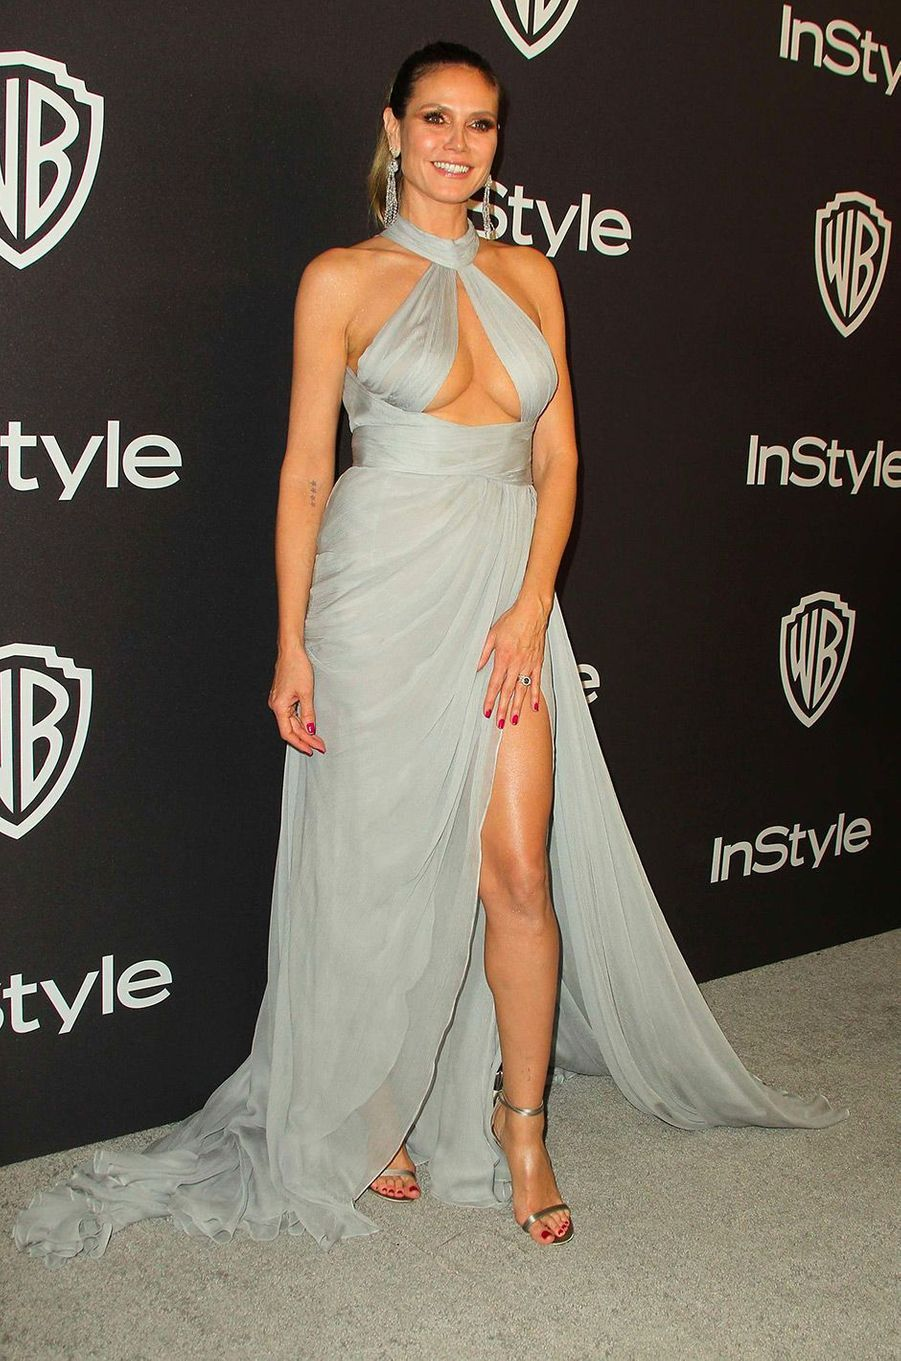 Heidi Klum à l'after-party In Style & Warner Bros, dimanche 6 janvier